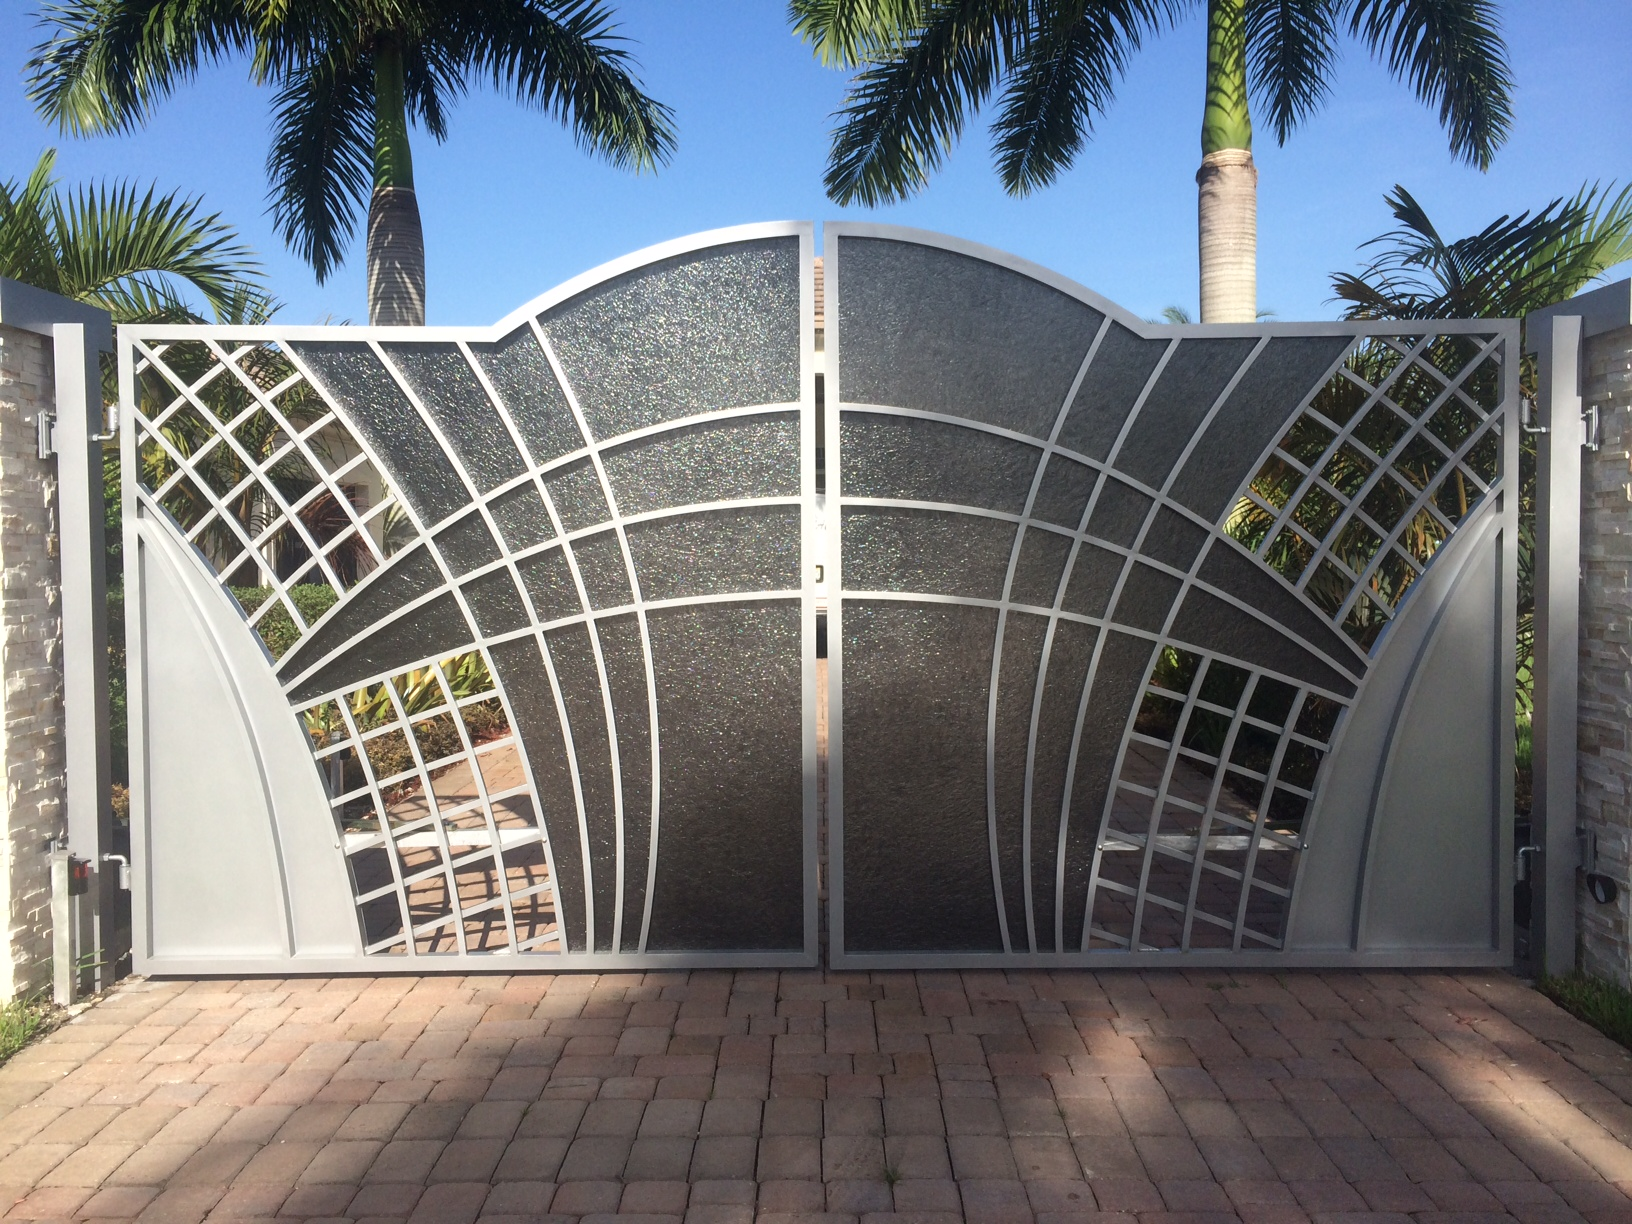 Wrought iron aluminum unique custom modern contemparary for Aluminum driveway gates prices